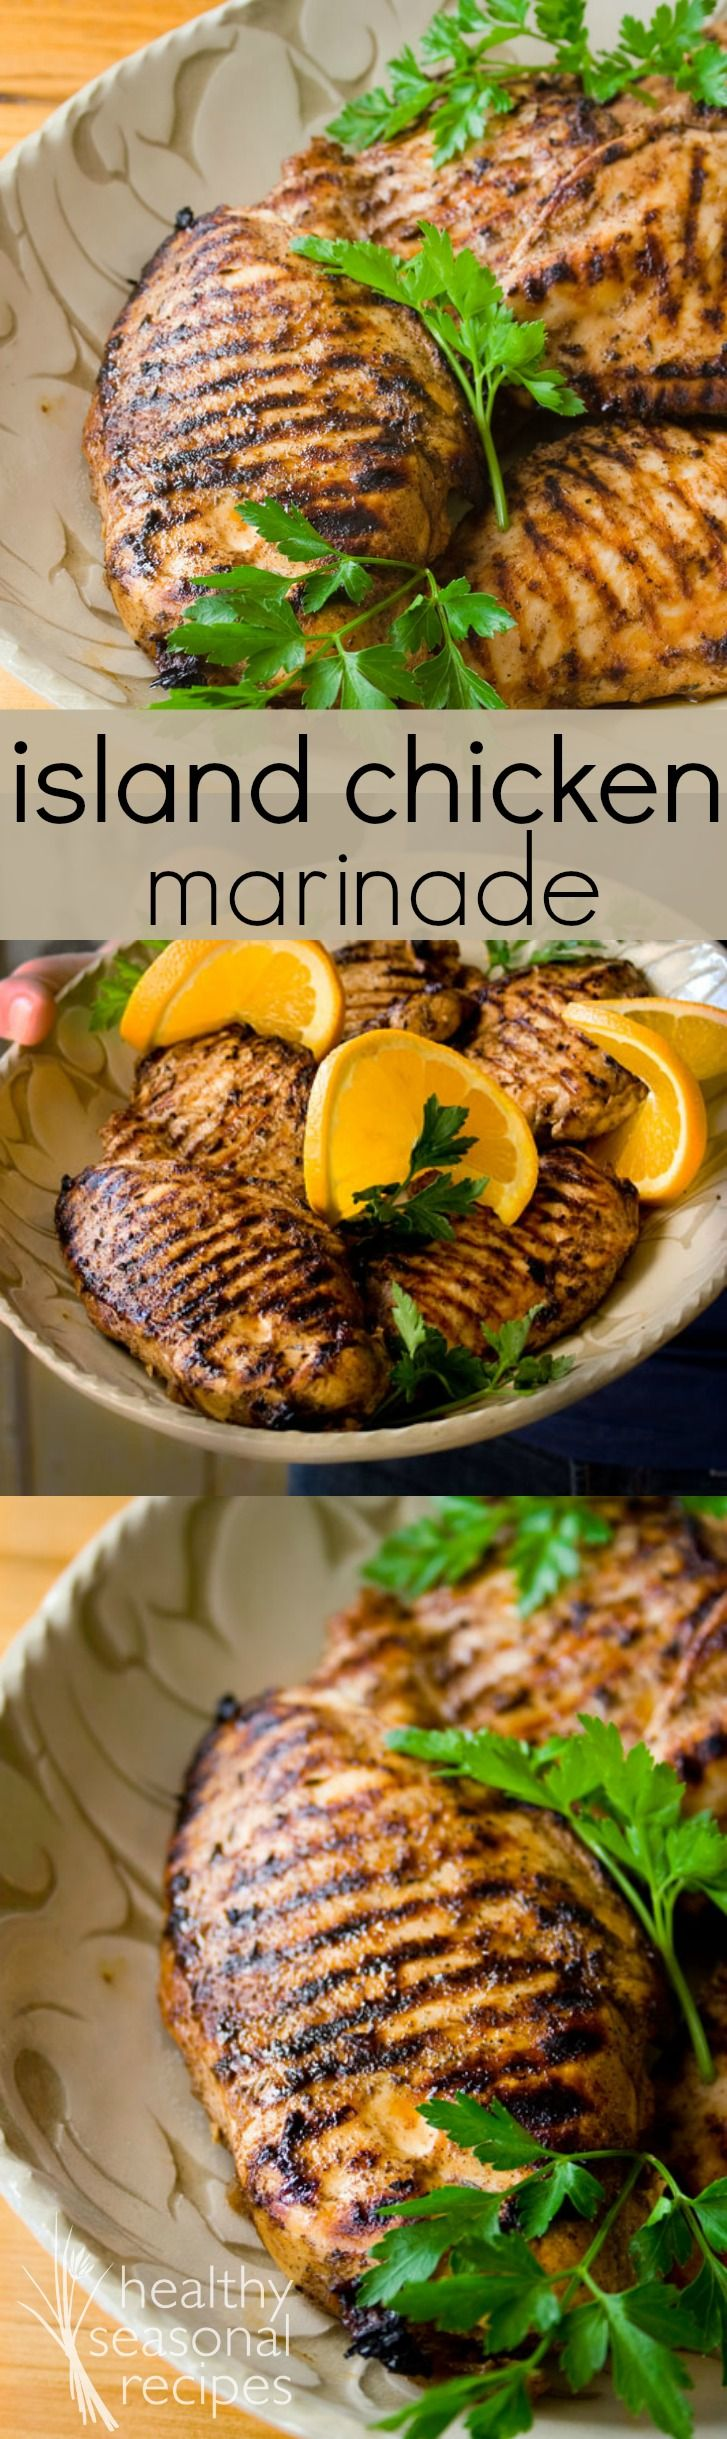 isabel's island chicken marinade - Healthy Seasonal Recipes